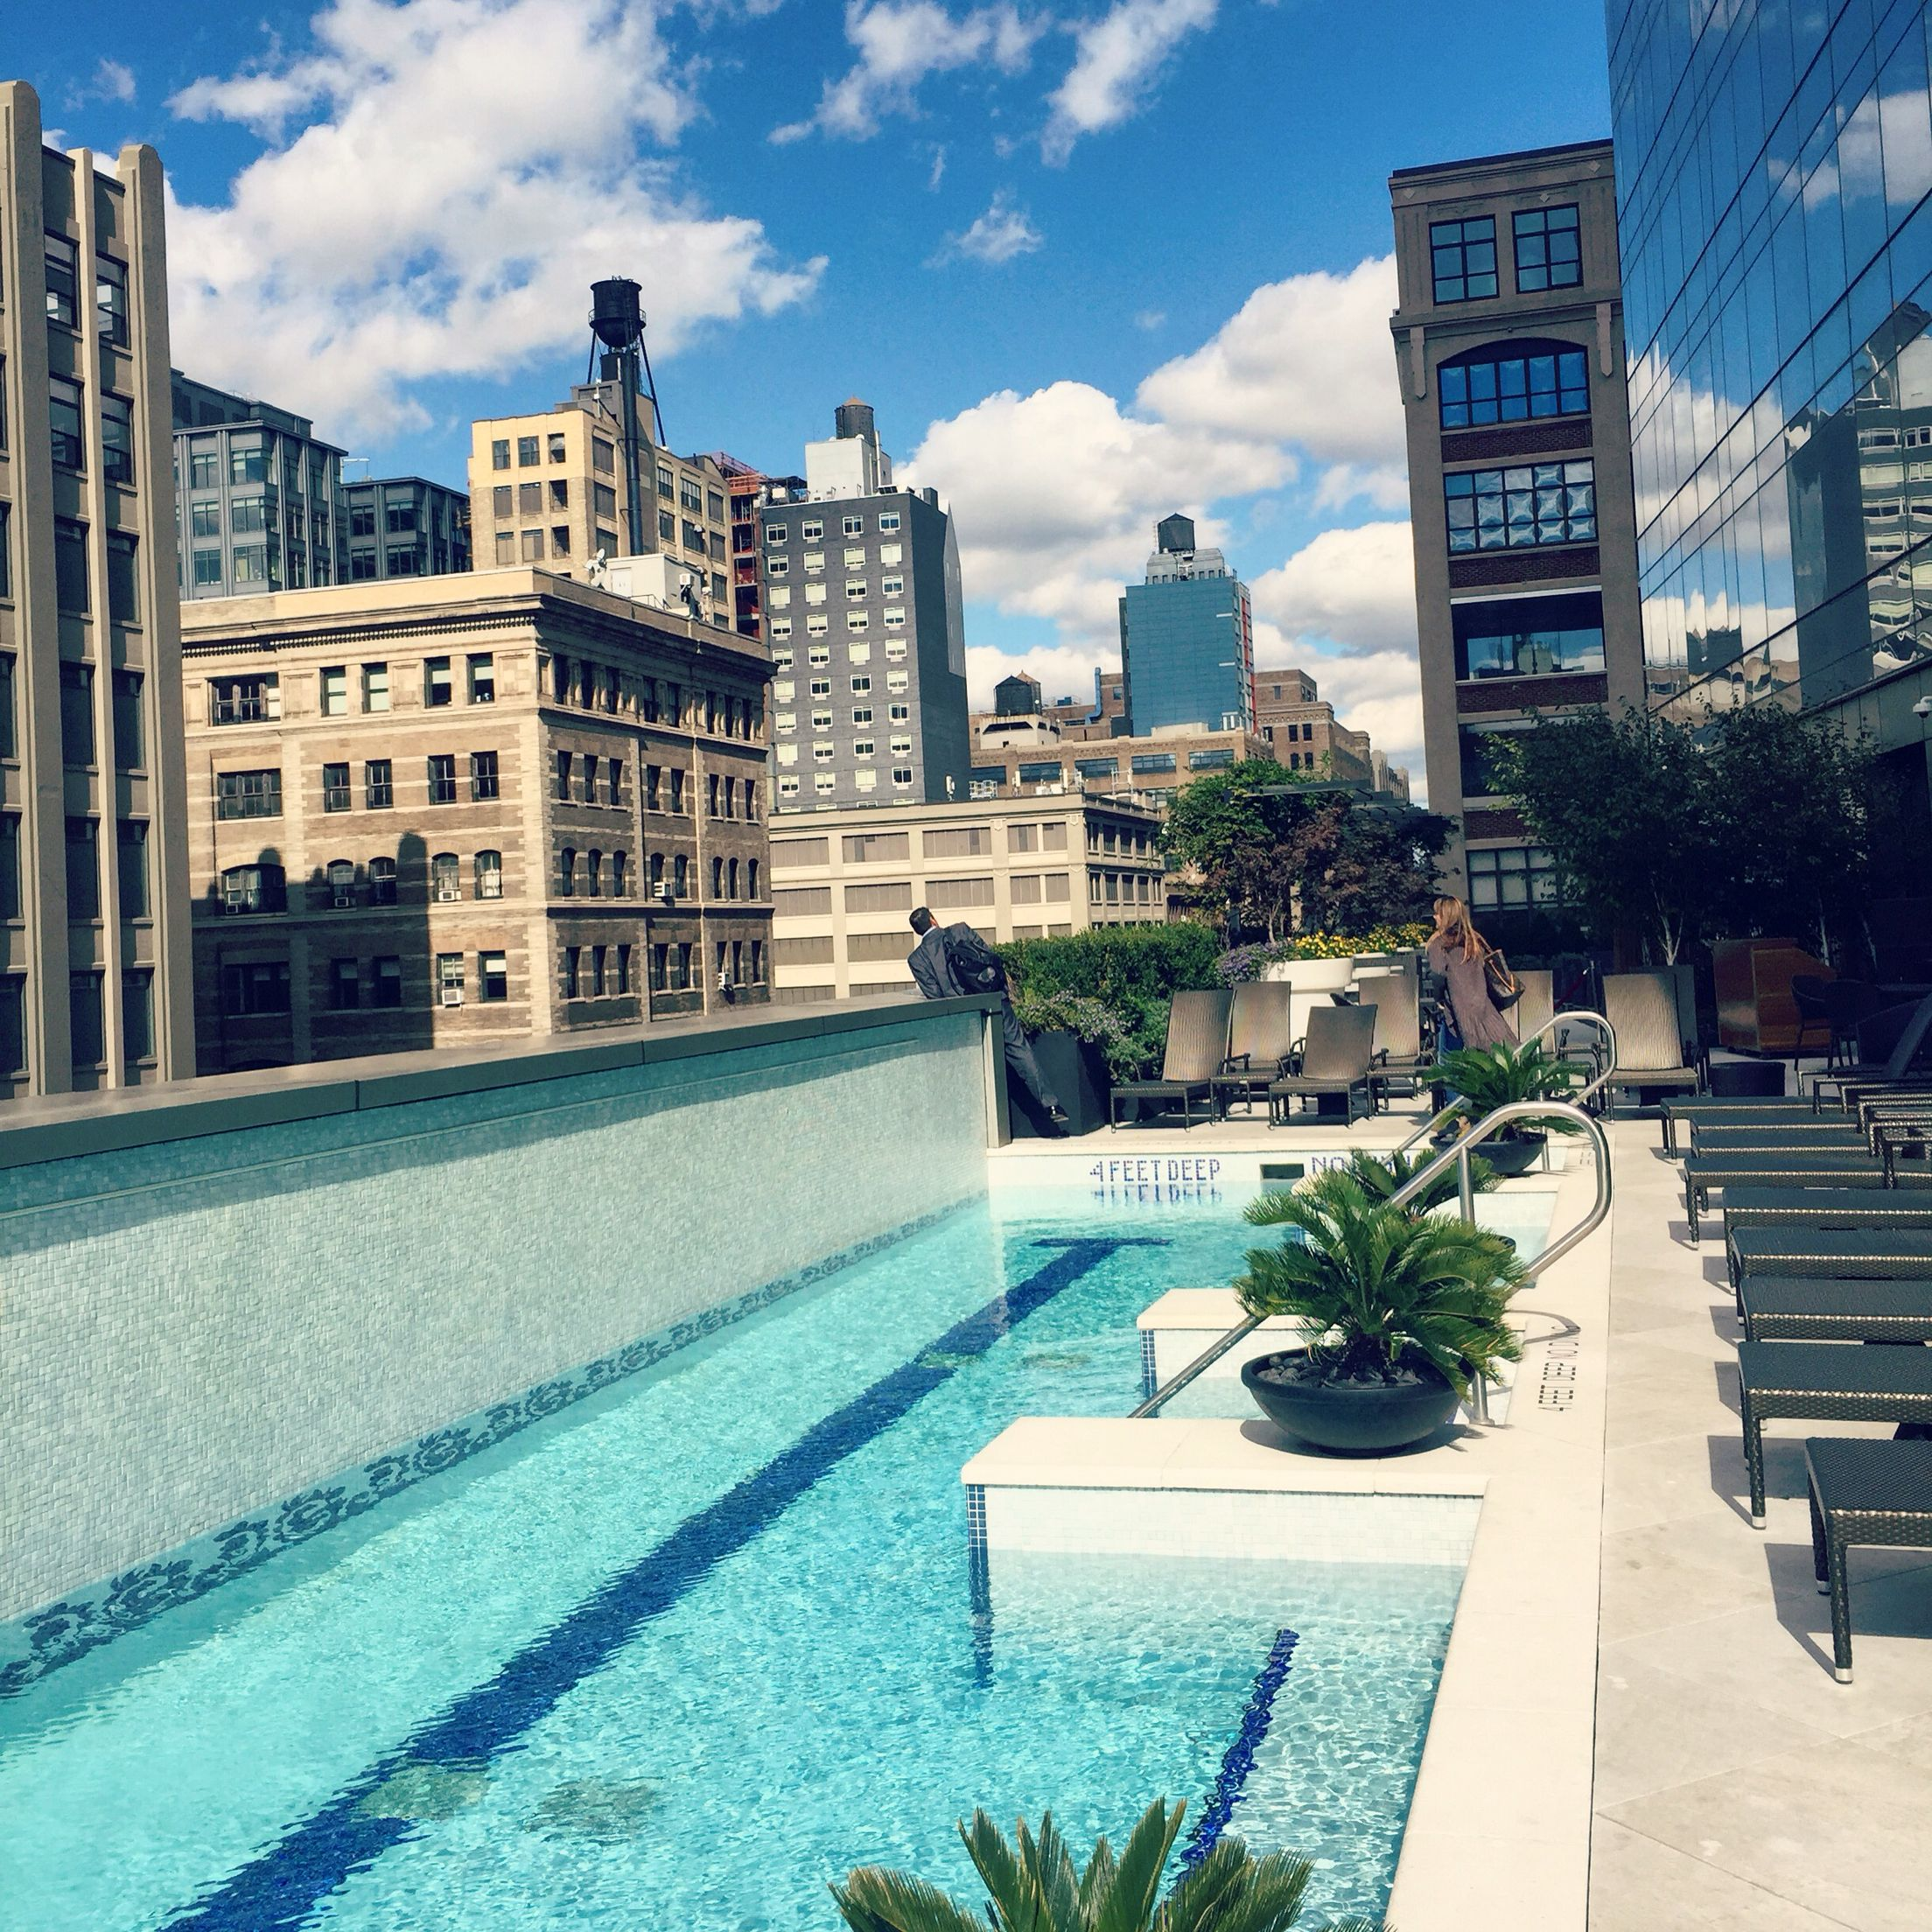 Rooftop Pool At The Trump Tower In Soho New York City New York Beautiful View Cool Pools Beautiful Views Rooftop Pool